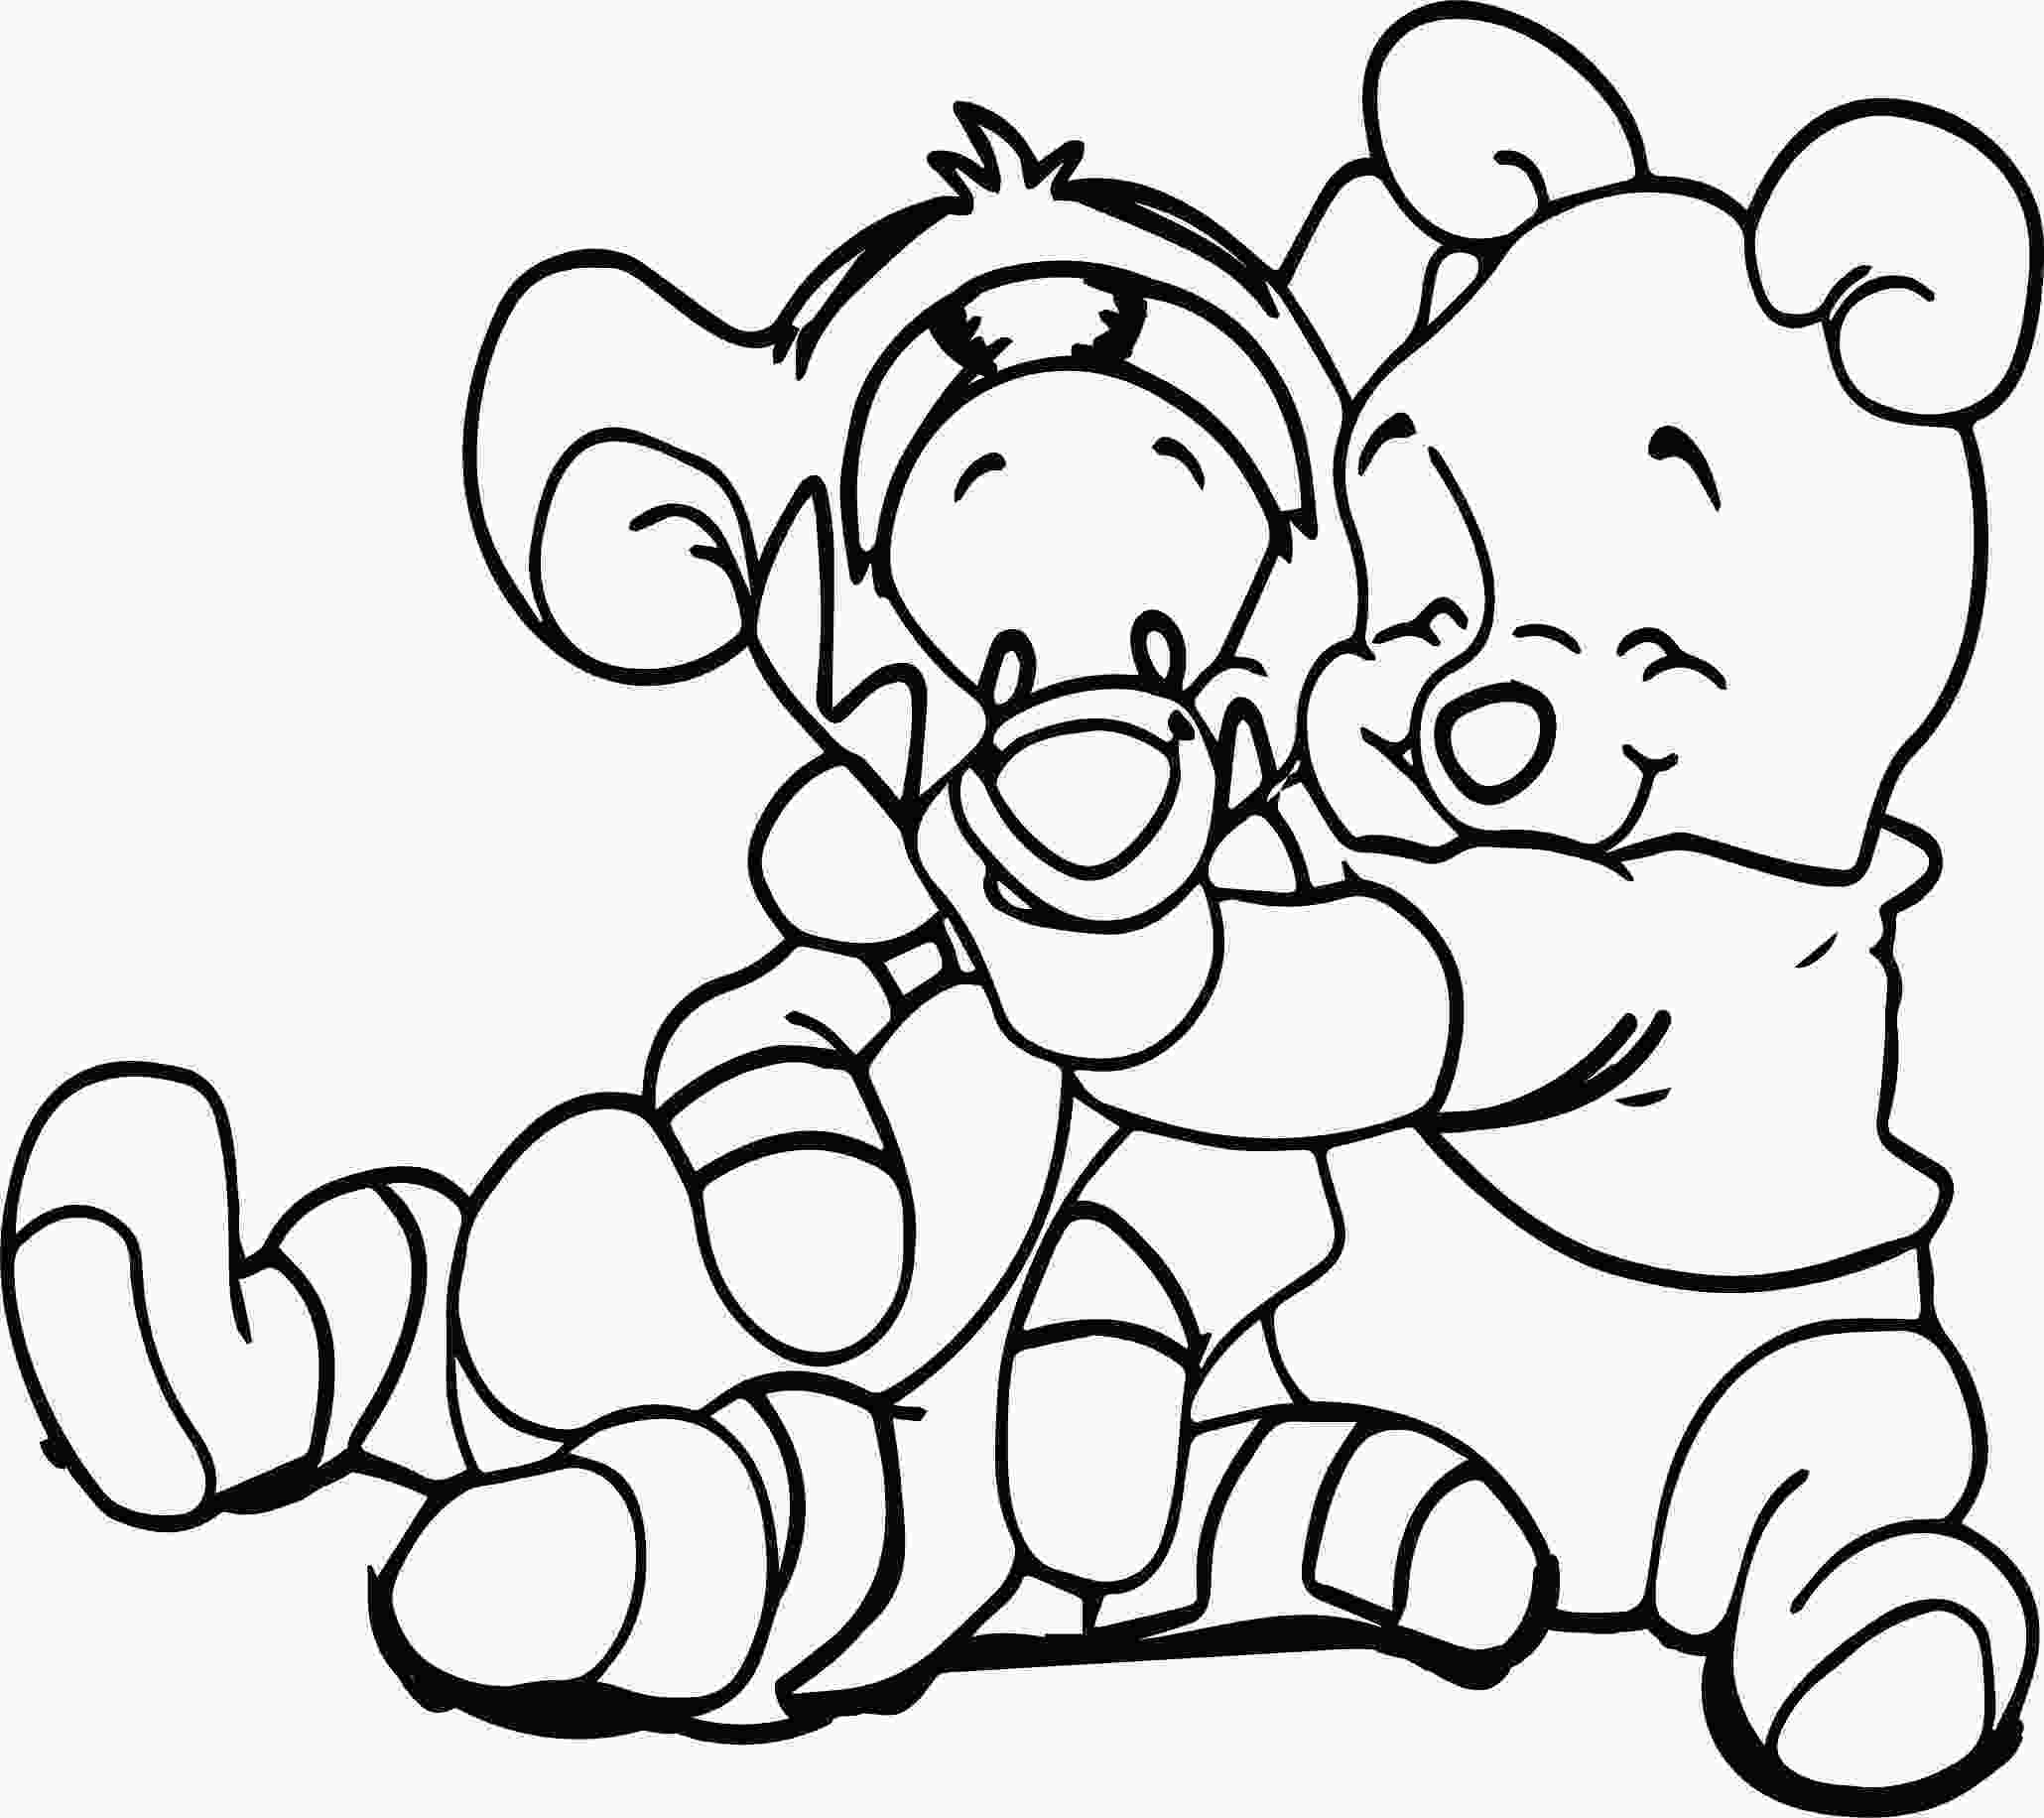 baby tigger coloring pages baby pooh and tigger coloring page wecoloringpagecom